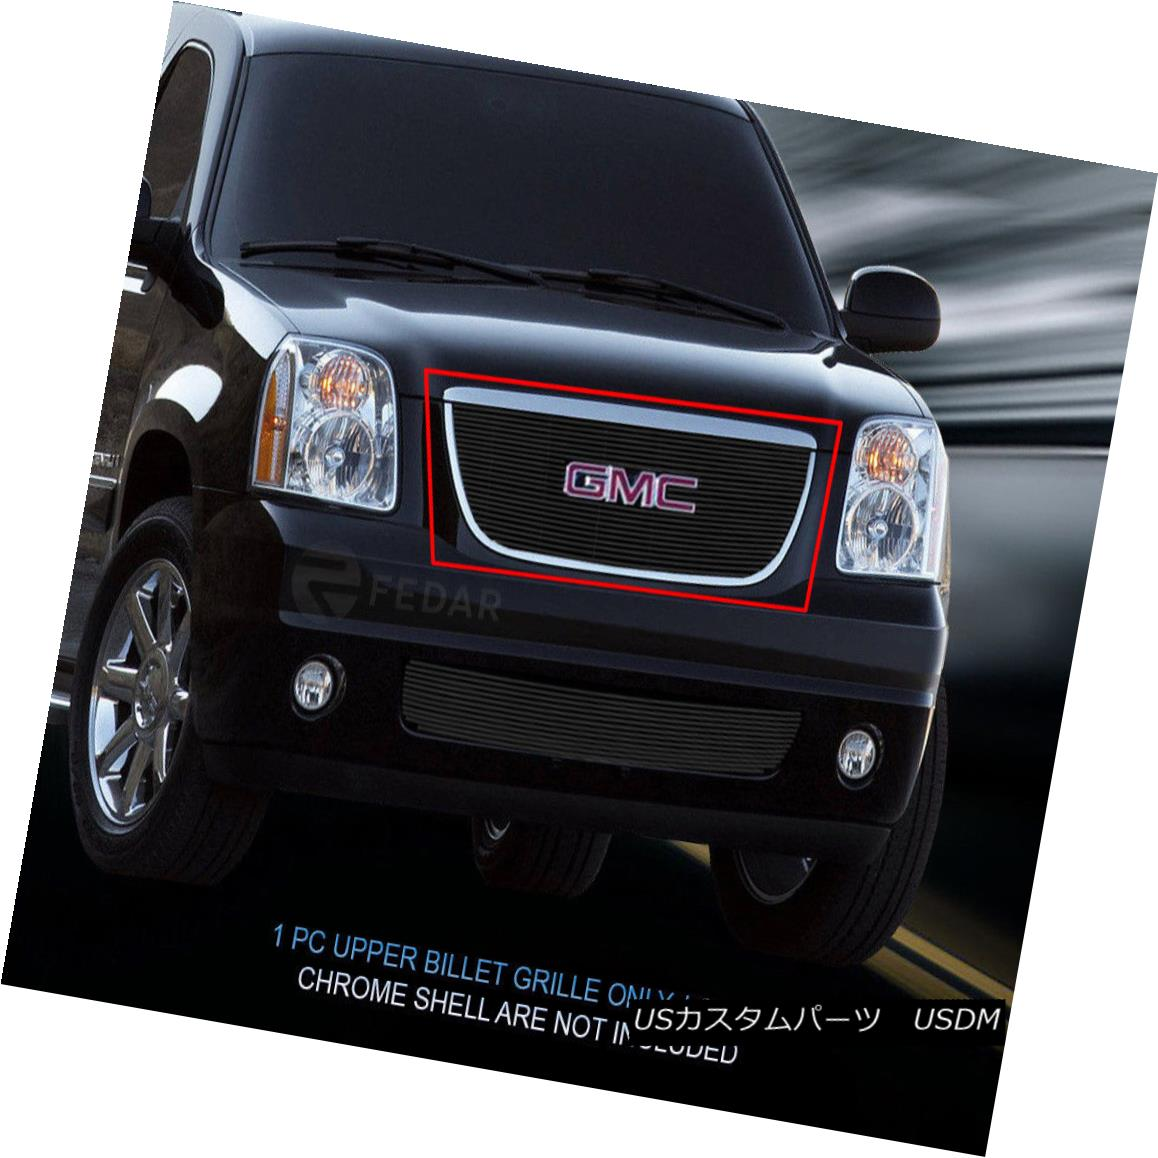 グリル Fedar Fits 2007-2013 GMC Yukon Black Main Upper Billet Grille Fedar Fits 2007-2013 GMC Yukon Blackメインアッパービレットグリル